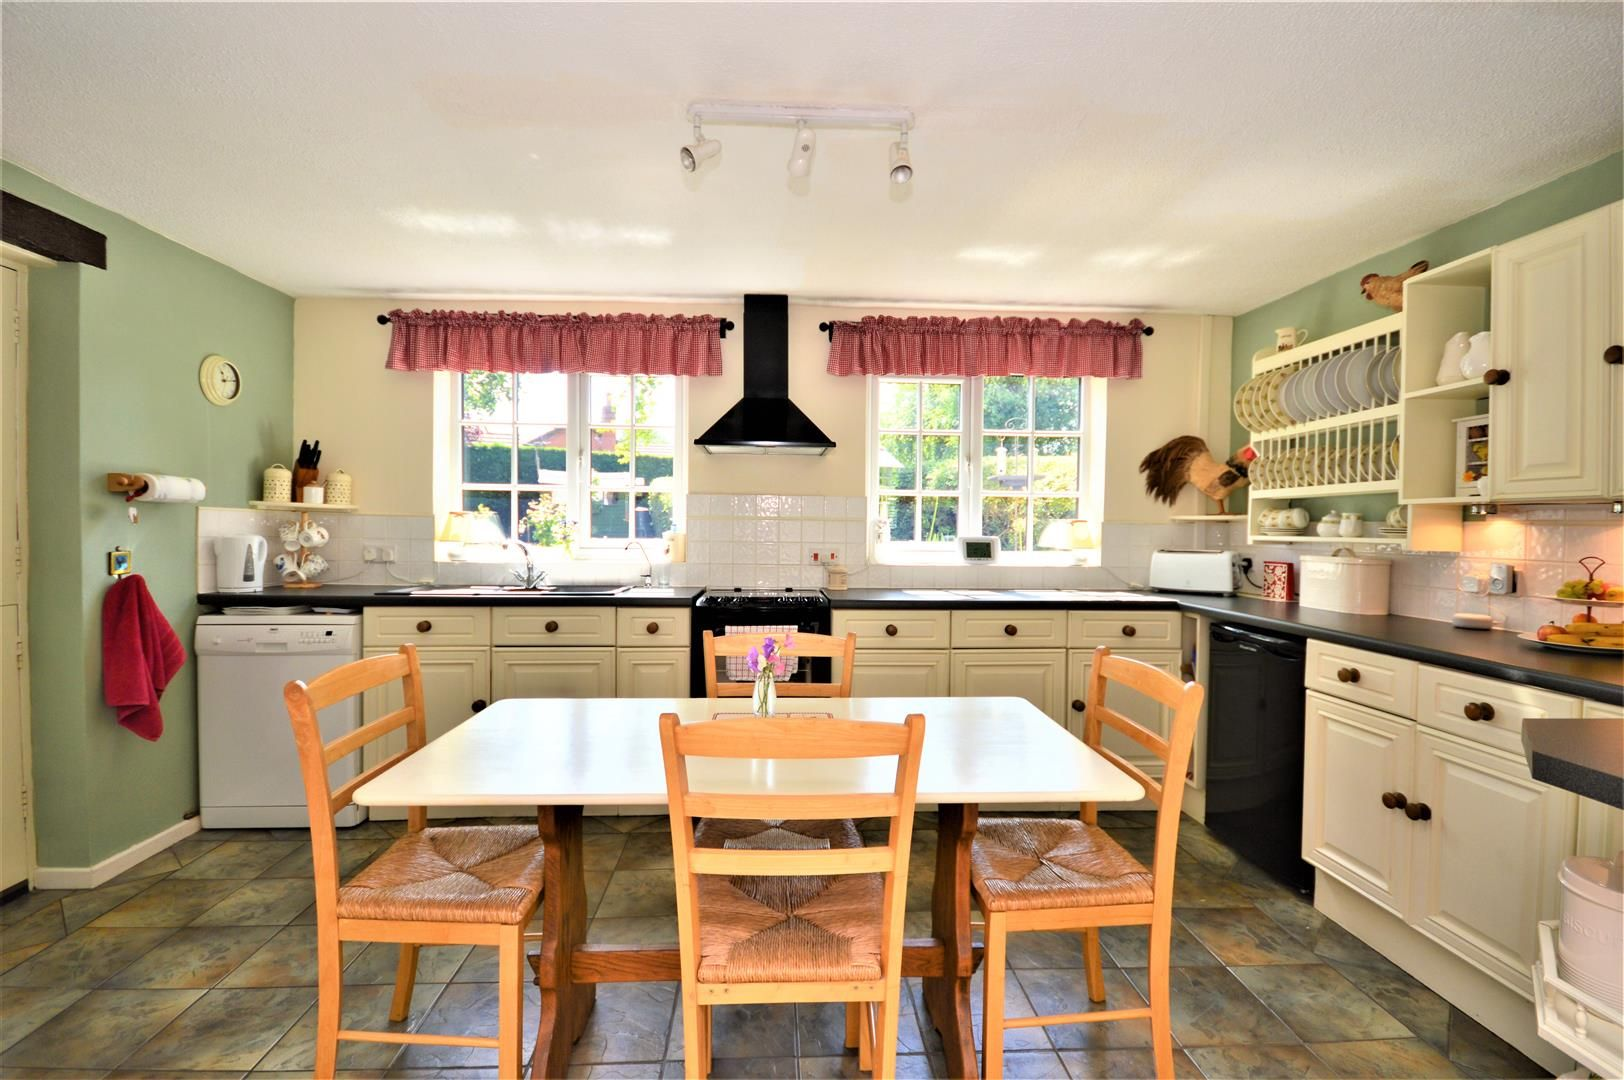 3 bed semi-detached for sale in Madley  - Property Image 7